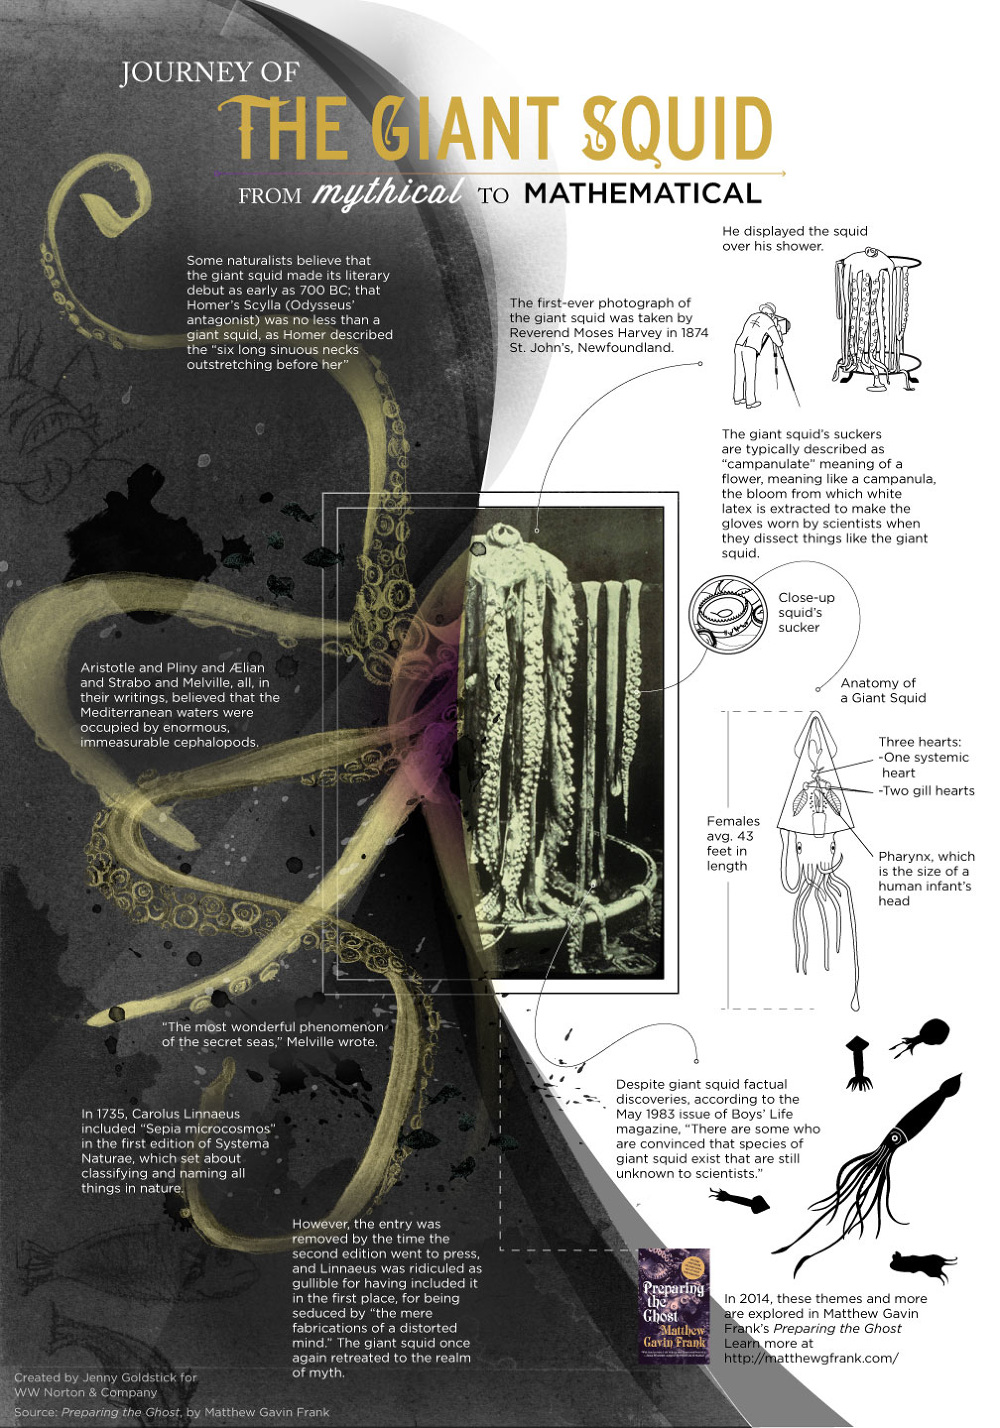 Goldstick_WWNorton_GIant_Squid_Diagram_1000